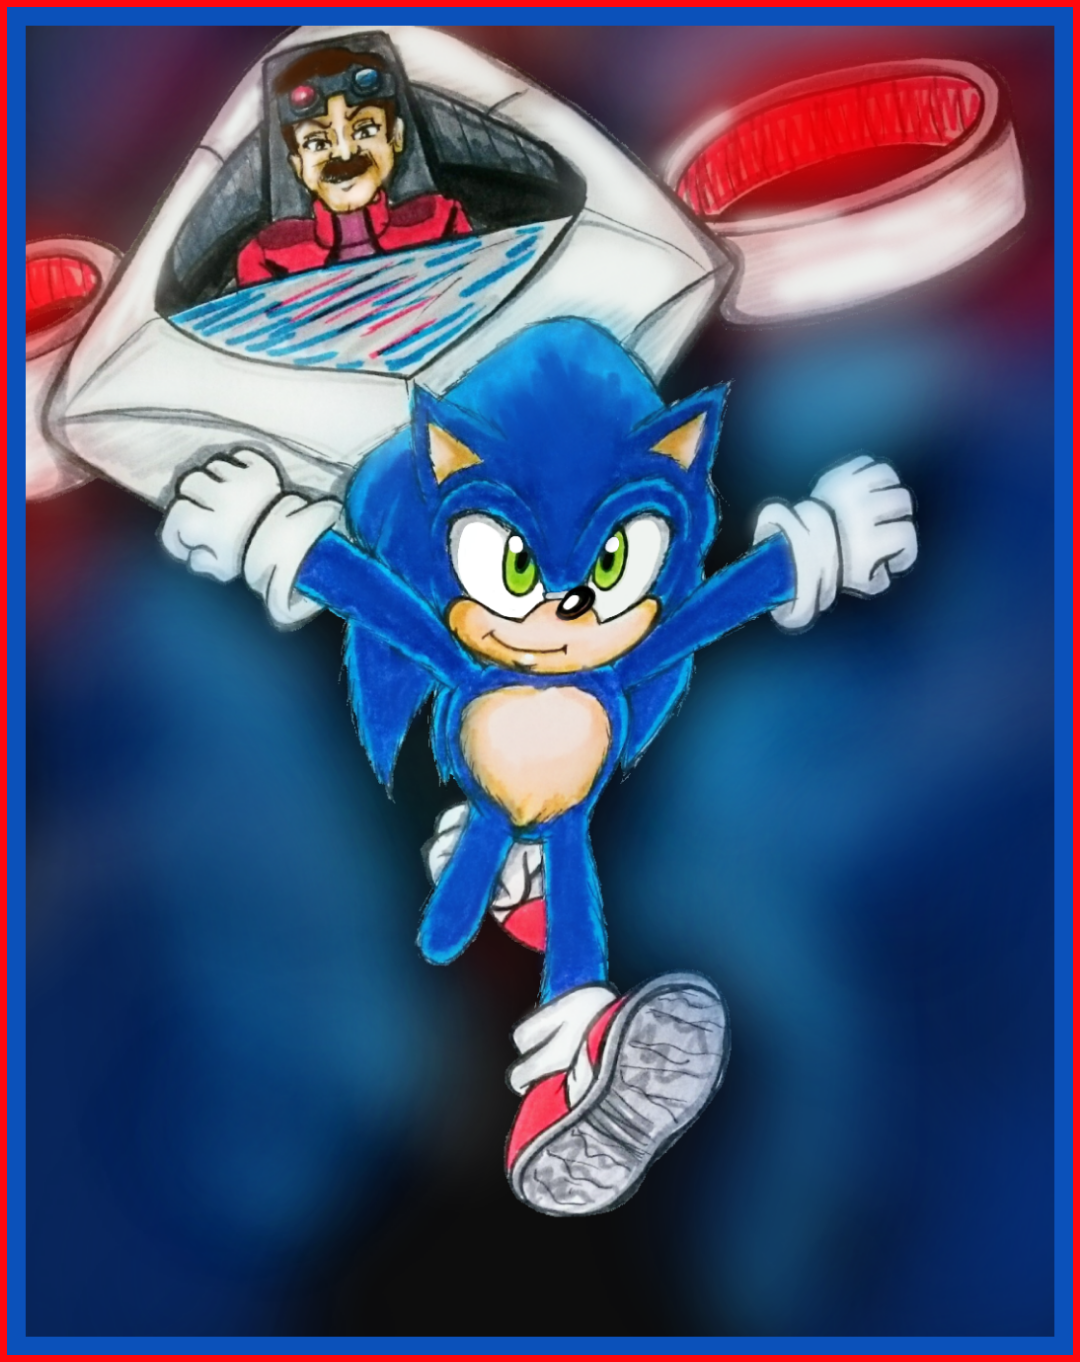 Commission Sonic 2020 Movie Picture By Mel Sky On Deviantart